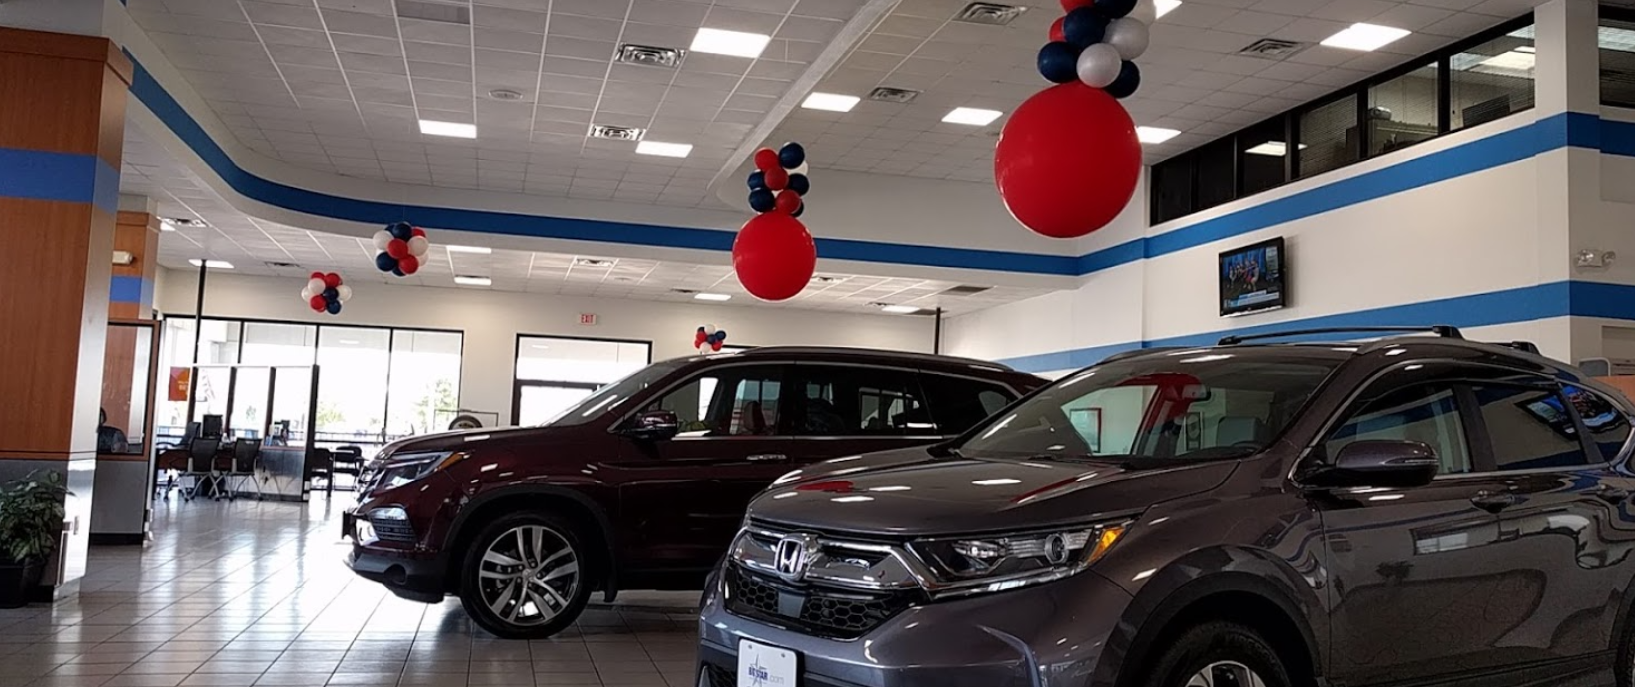 Hertz Car Sales Houston >> Big Star Honda at 11200 Gulf Fwy, Houston, TX on Fave